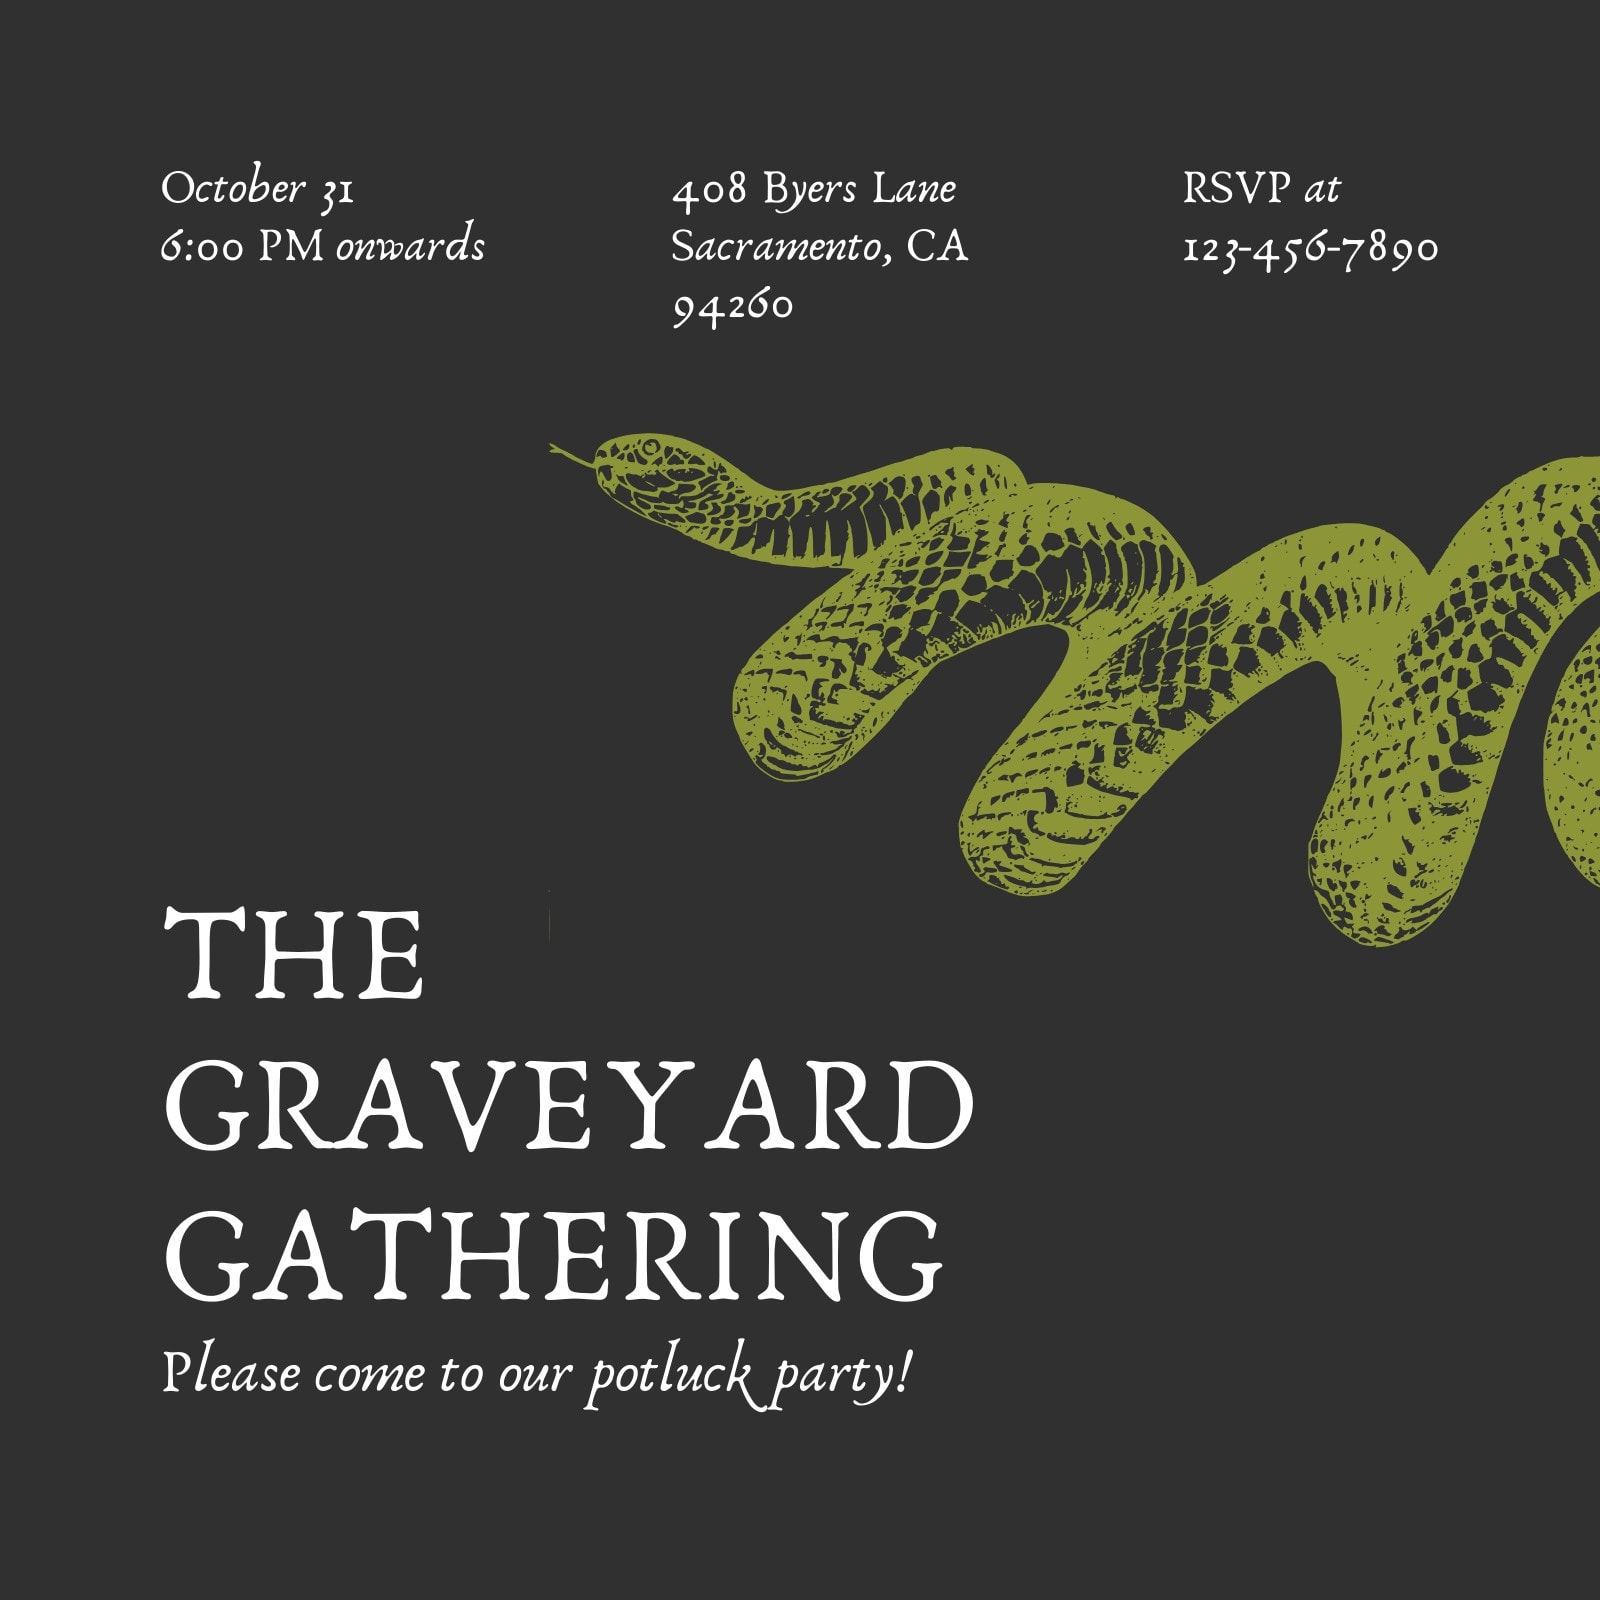 Green and Black Snake Edgy Monochrome Halloween Grownup Party Invitation